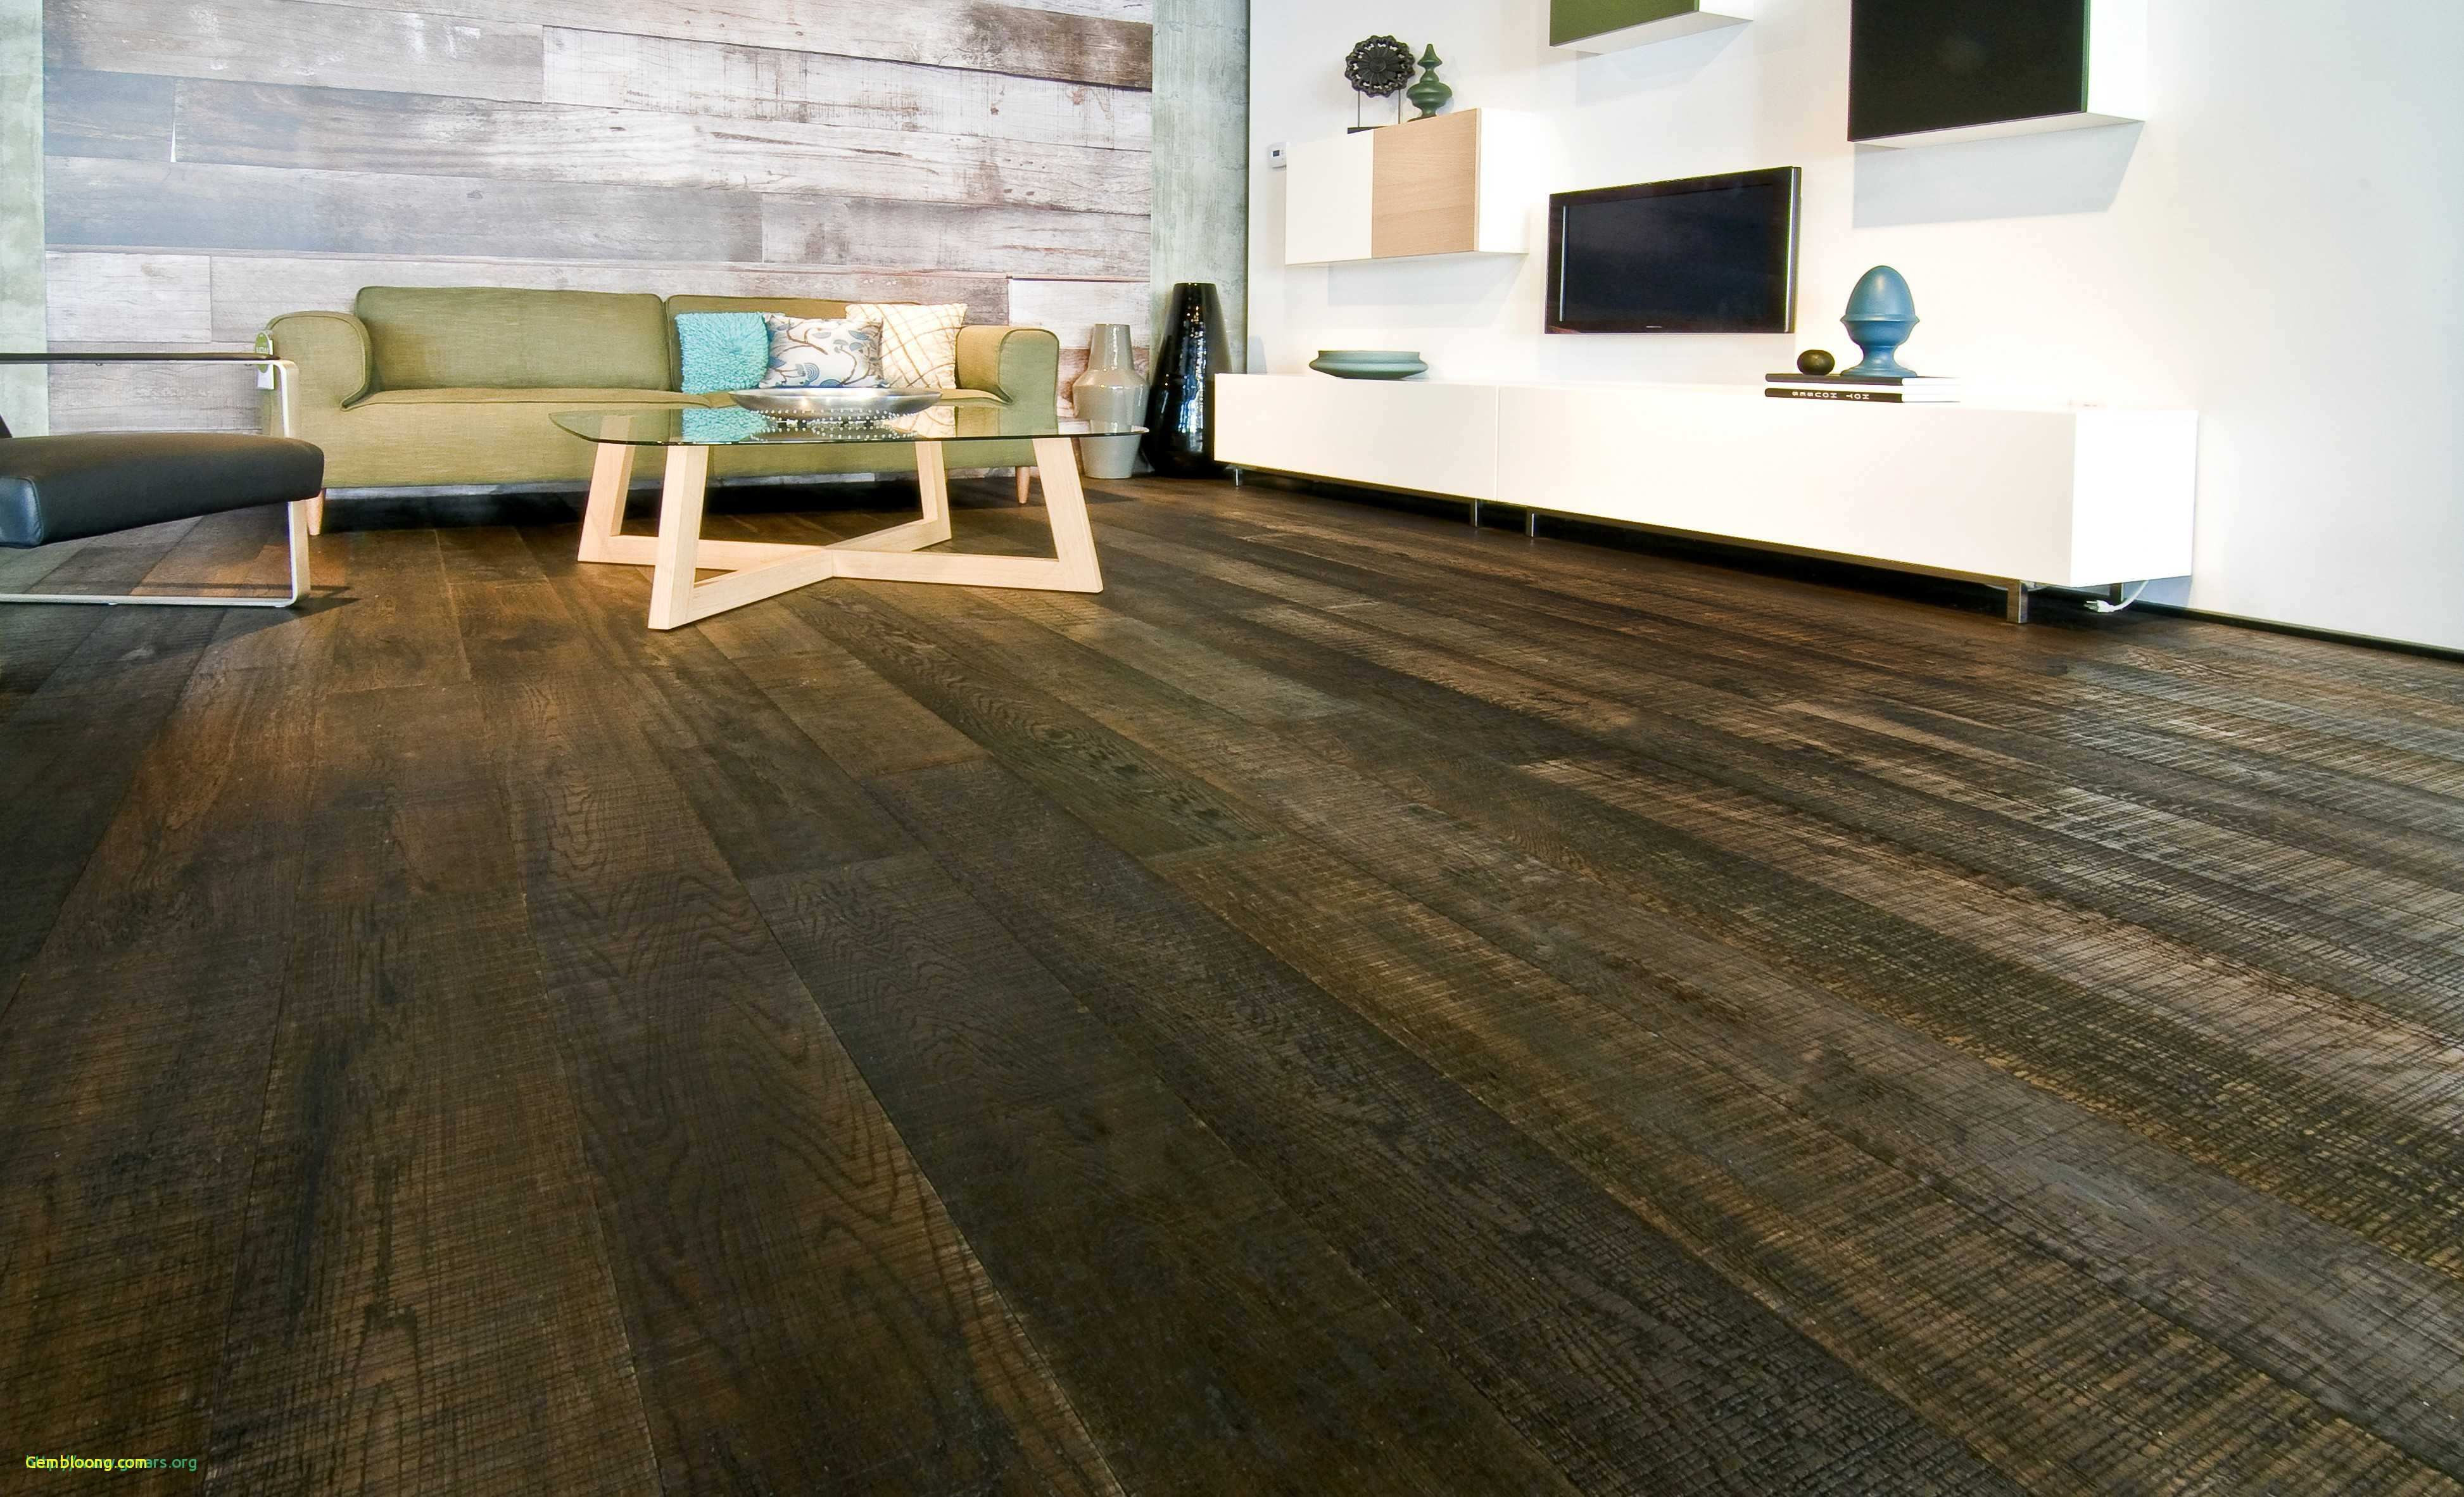 bedroom hardwood floor ideas of wood for floors facesinnature throughout best wood flooring for the money impressionnant engaging discount hardwood flooring 5 where to buy inspirational